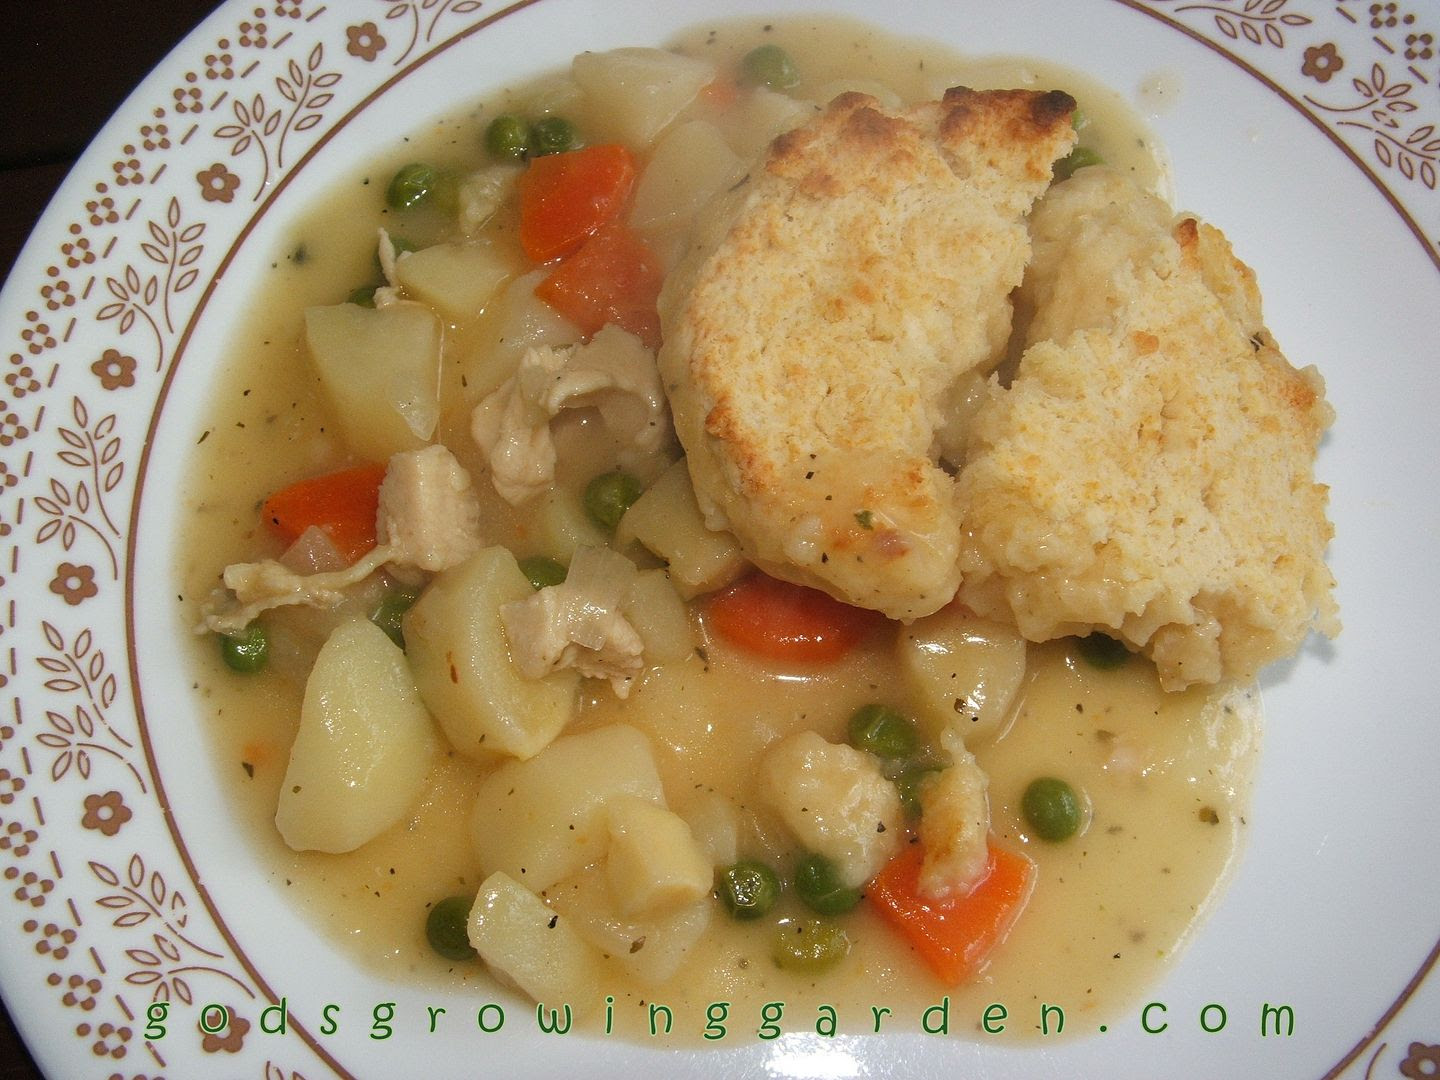 Springtime Chicken Pot Pie by Angie Ouellette-Tower for godsgrowinggarden.com photo 015_zpsfdf5561e.jpg